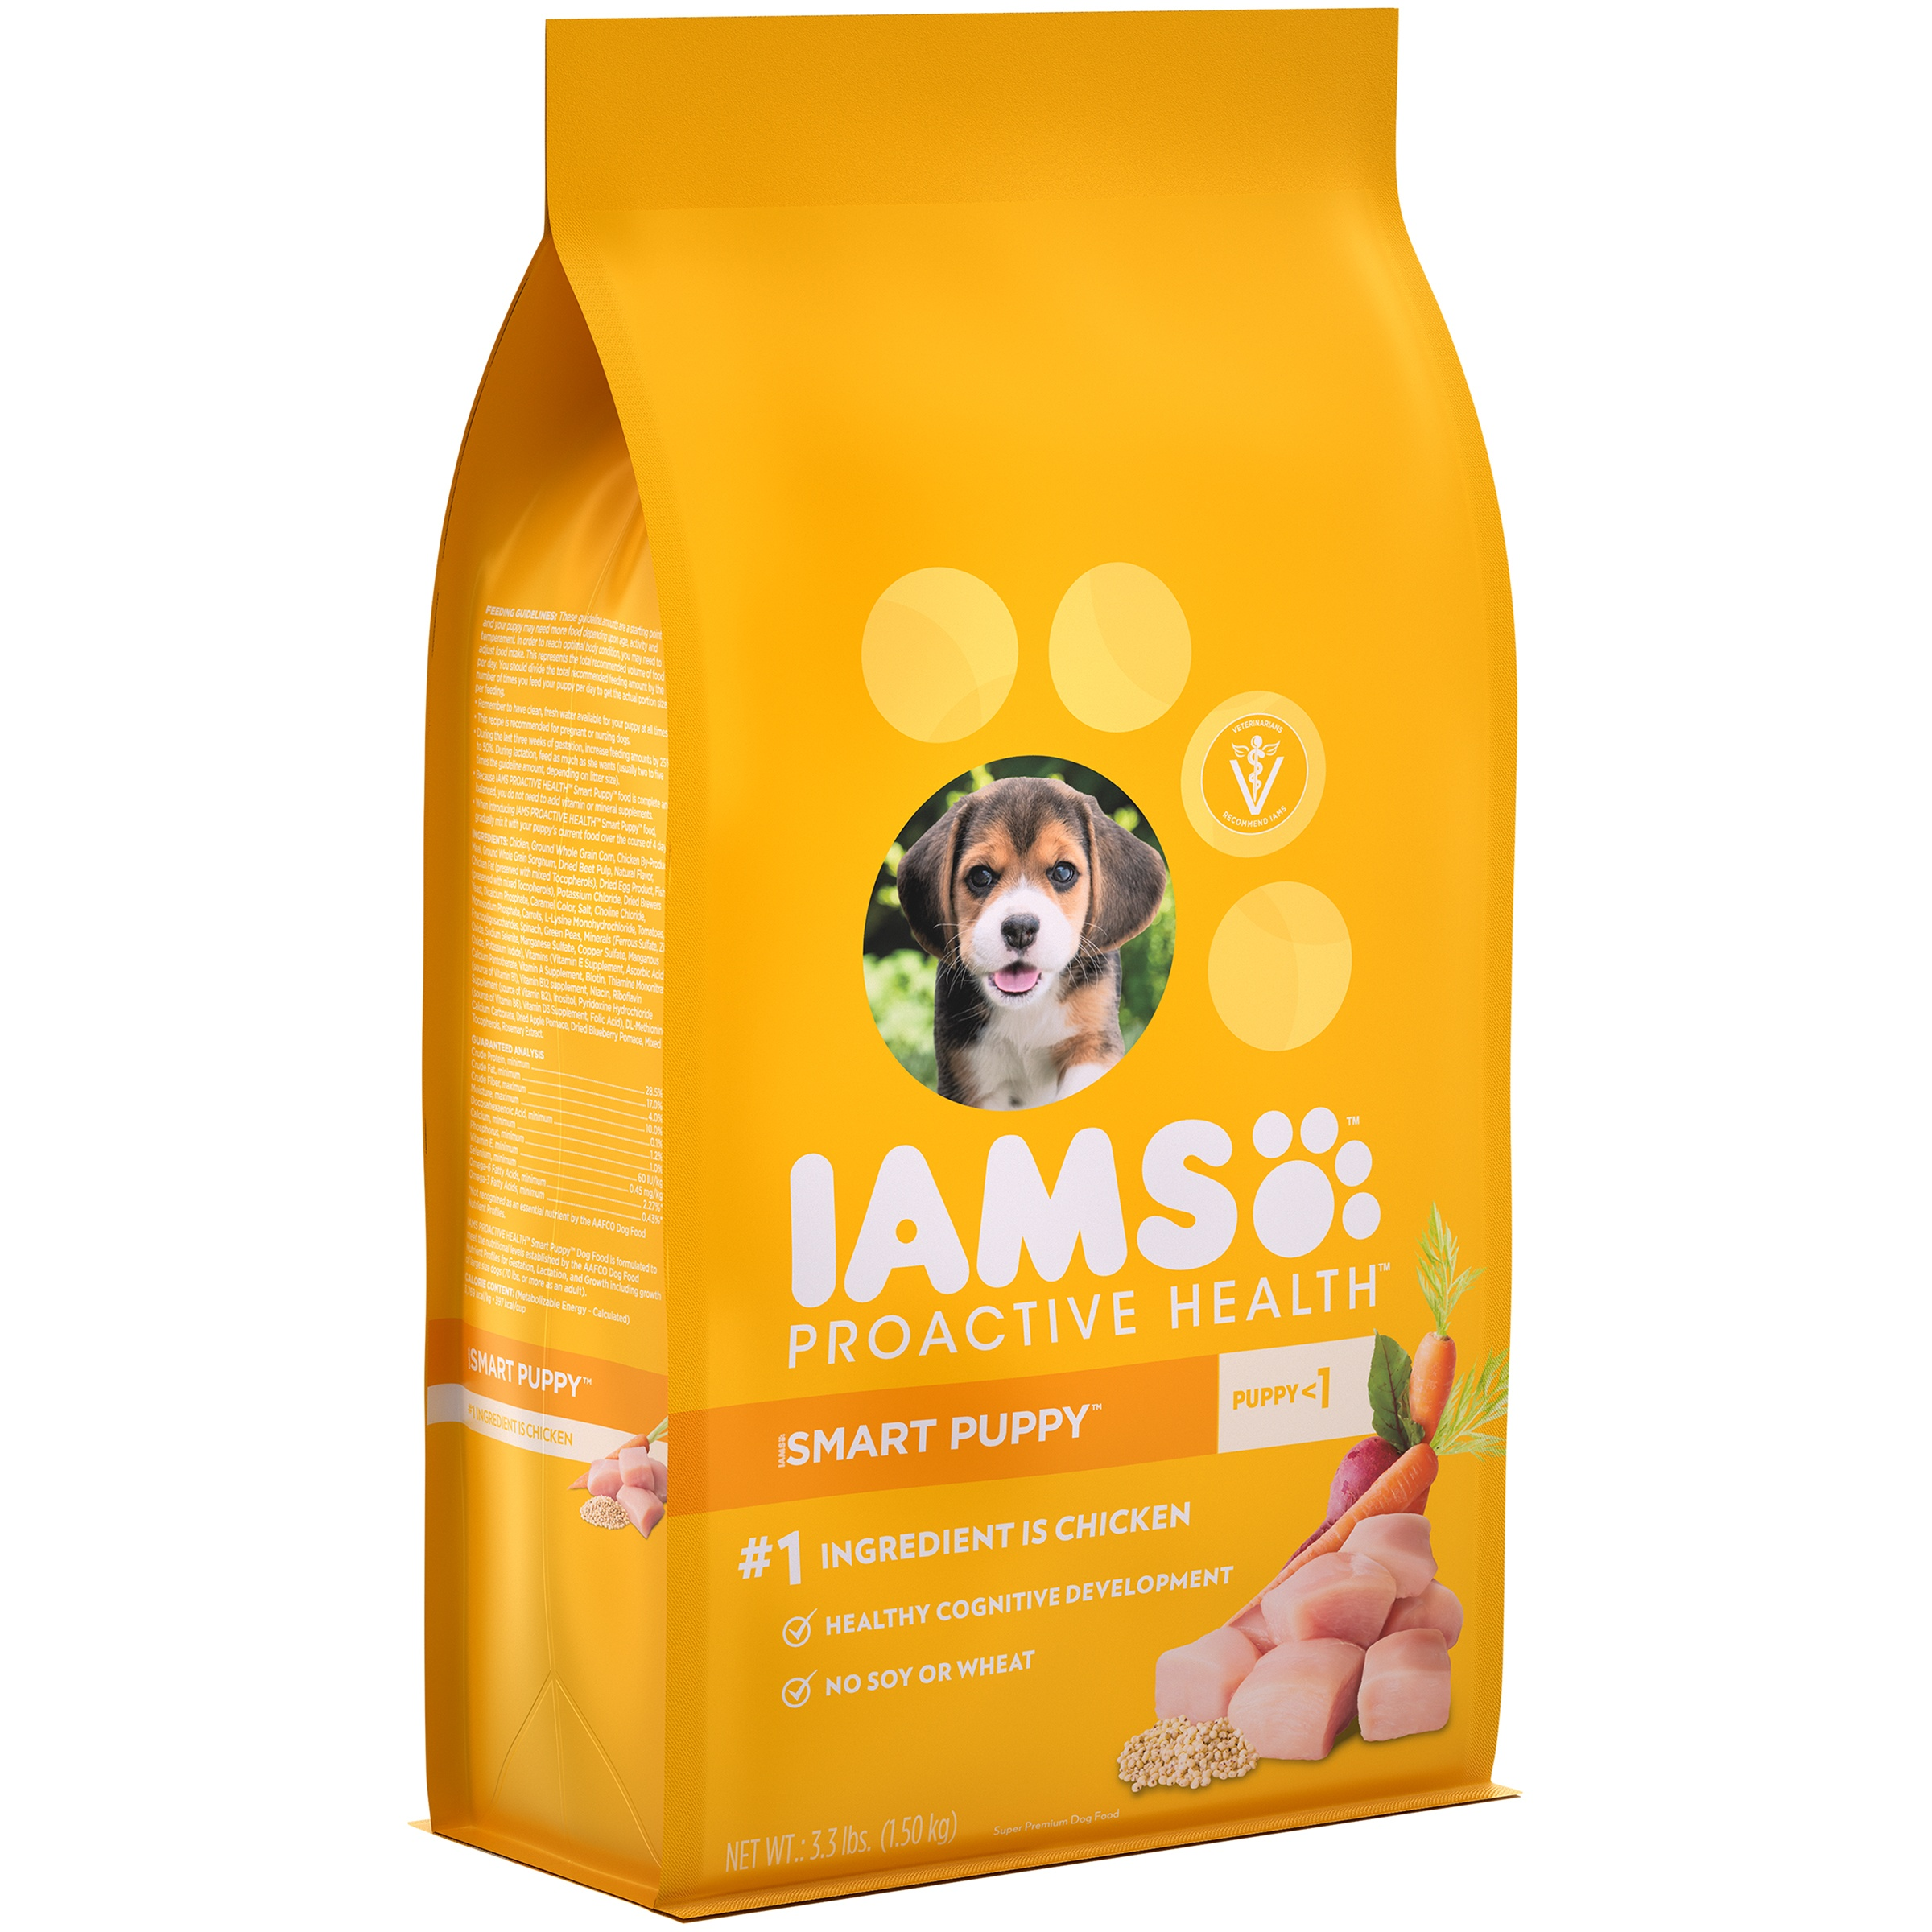 Iams ProActive Health Smart Puppy Original Premium Puppy Food, 3.3 lb by Mars Petcare Us